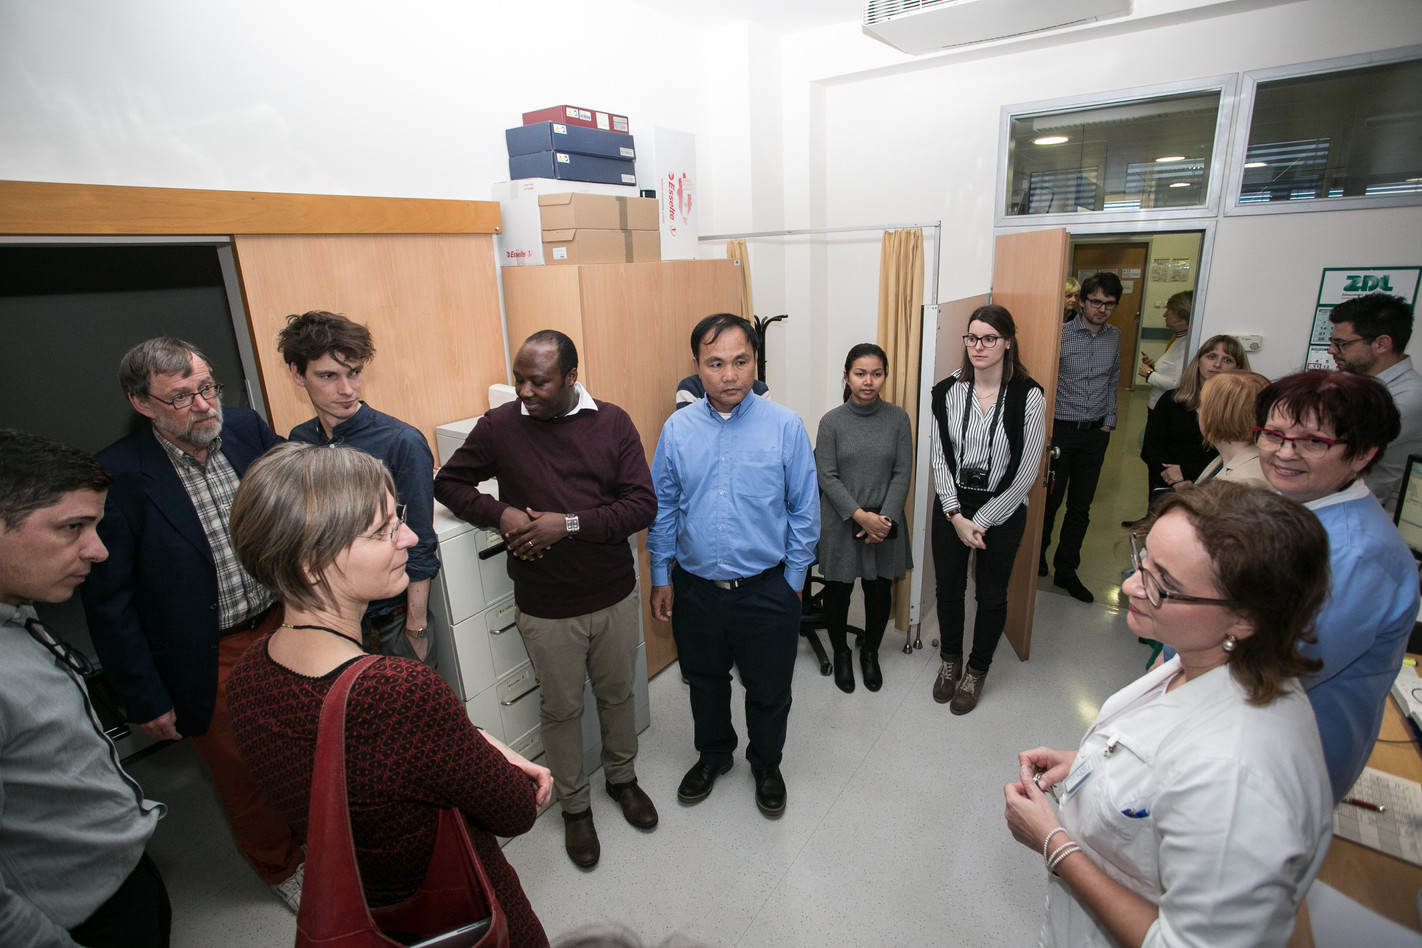 SCUBY team visiting the rengen lab